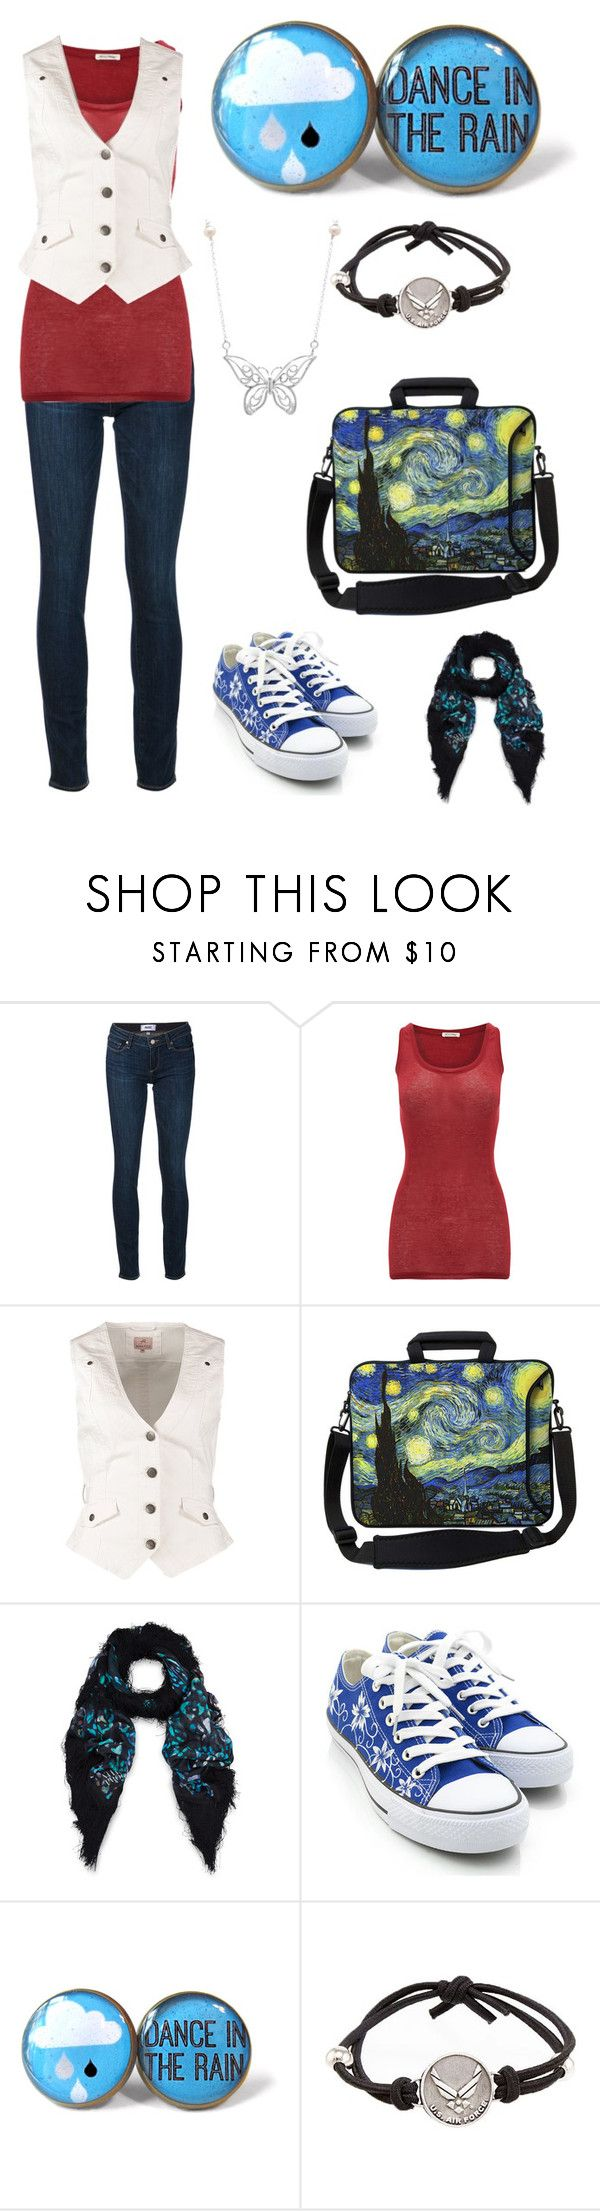 """New Start"" by conversecanvas ❤ liked on Polyvore featuring Paige Denim, American Vintage, Anna Field, Athena Procopiou, HVBAO, JewelGlo, Sterling Essentials, women's clothing, women and female"